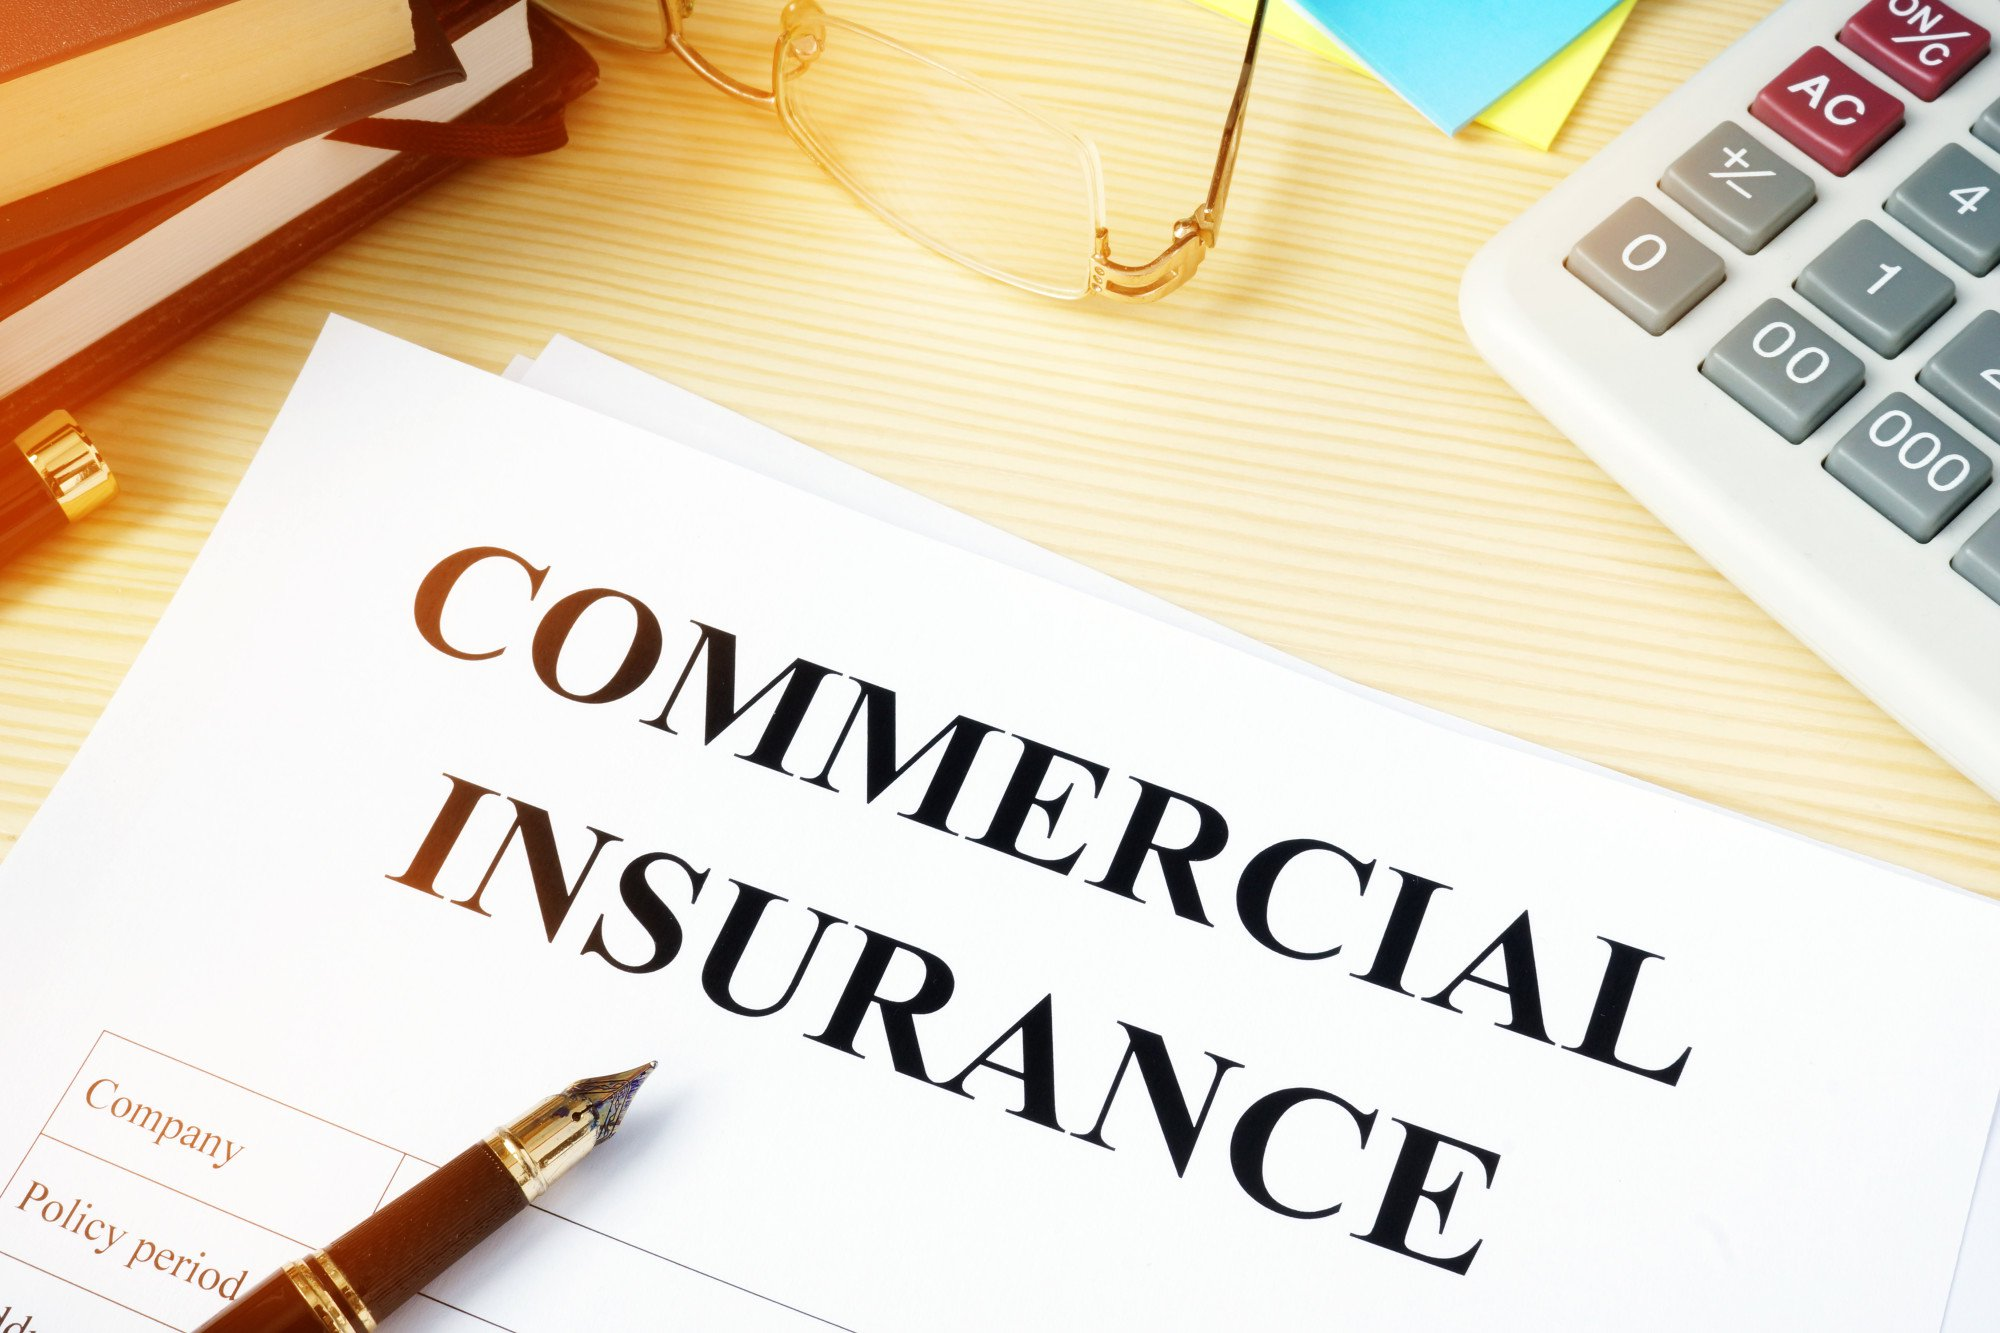 Commercial insurance types and classifications